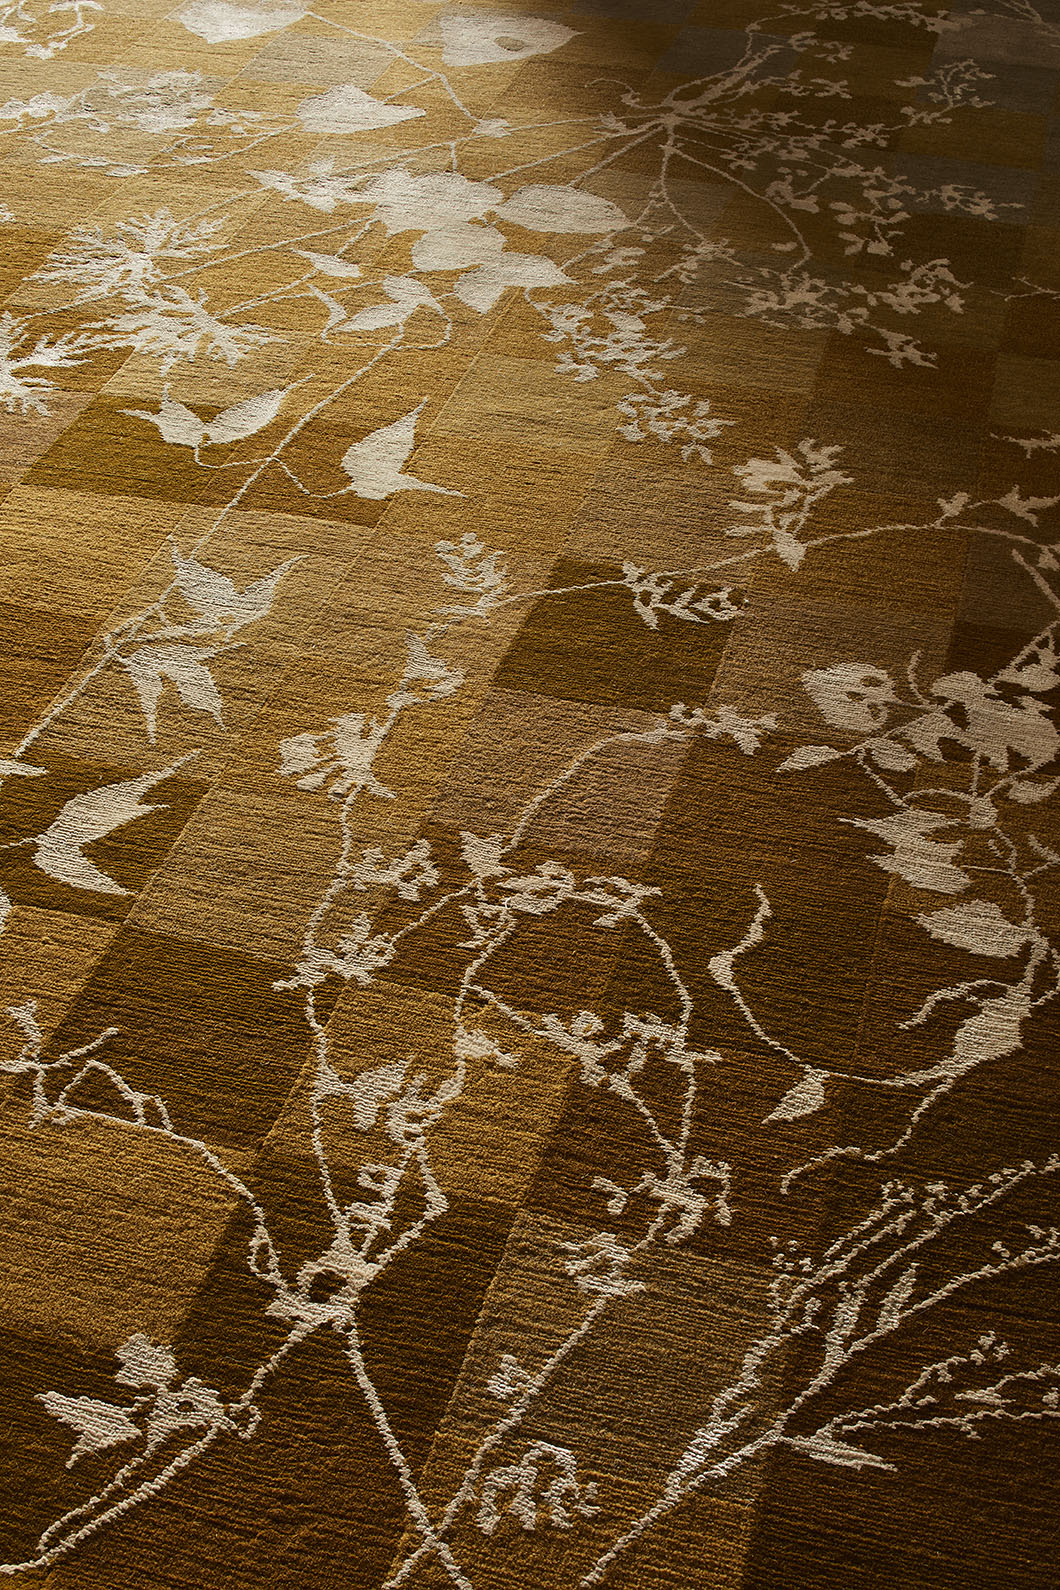 Detail of a copper colour Botanical Rug in shadow